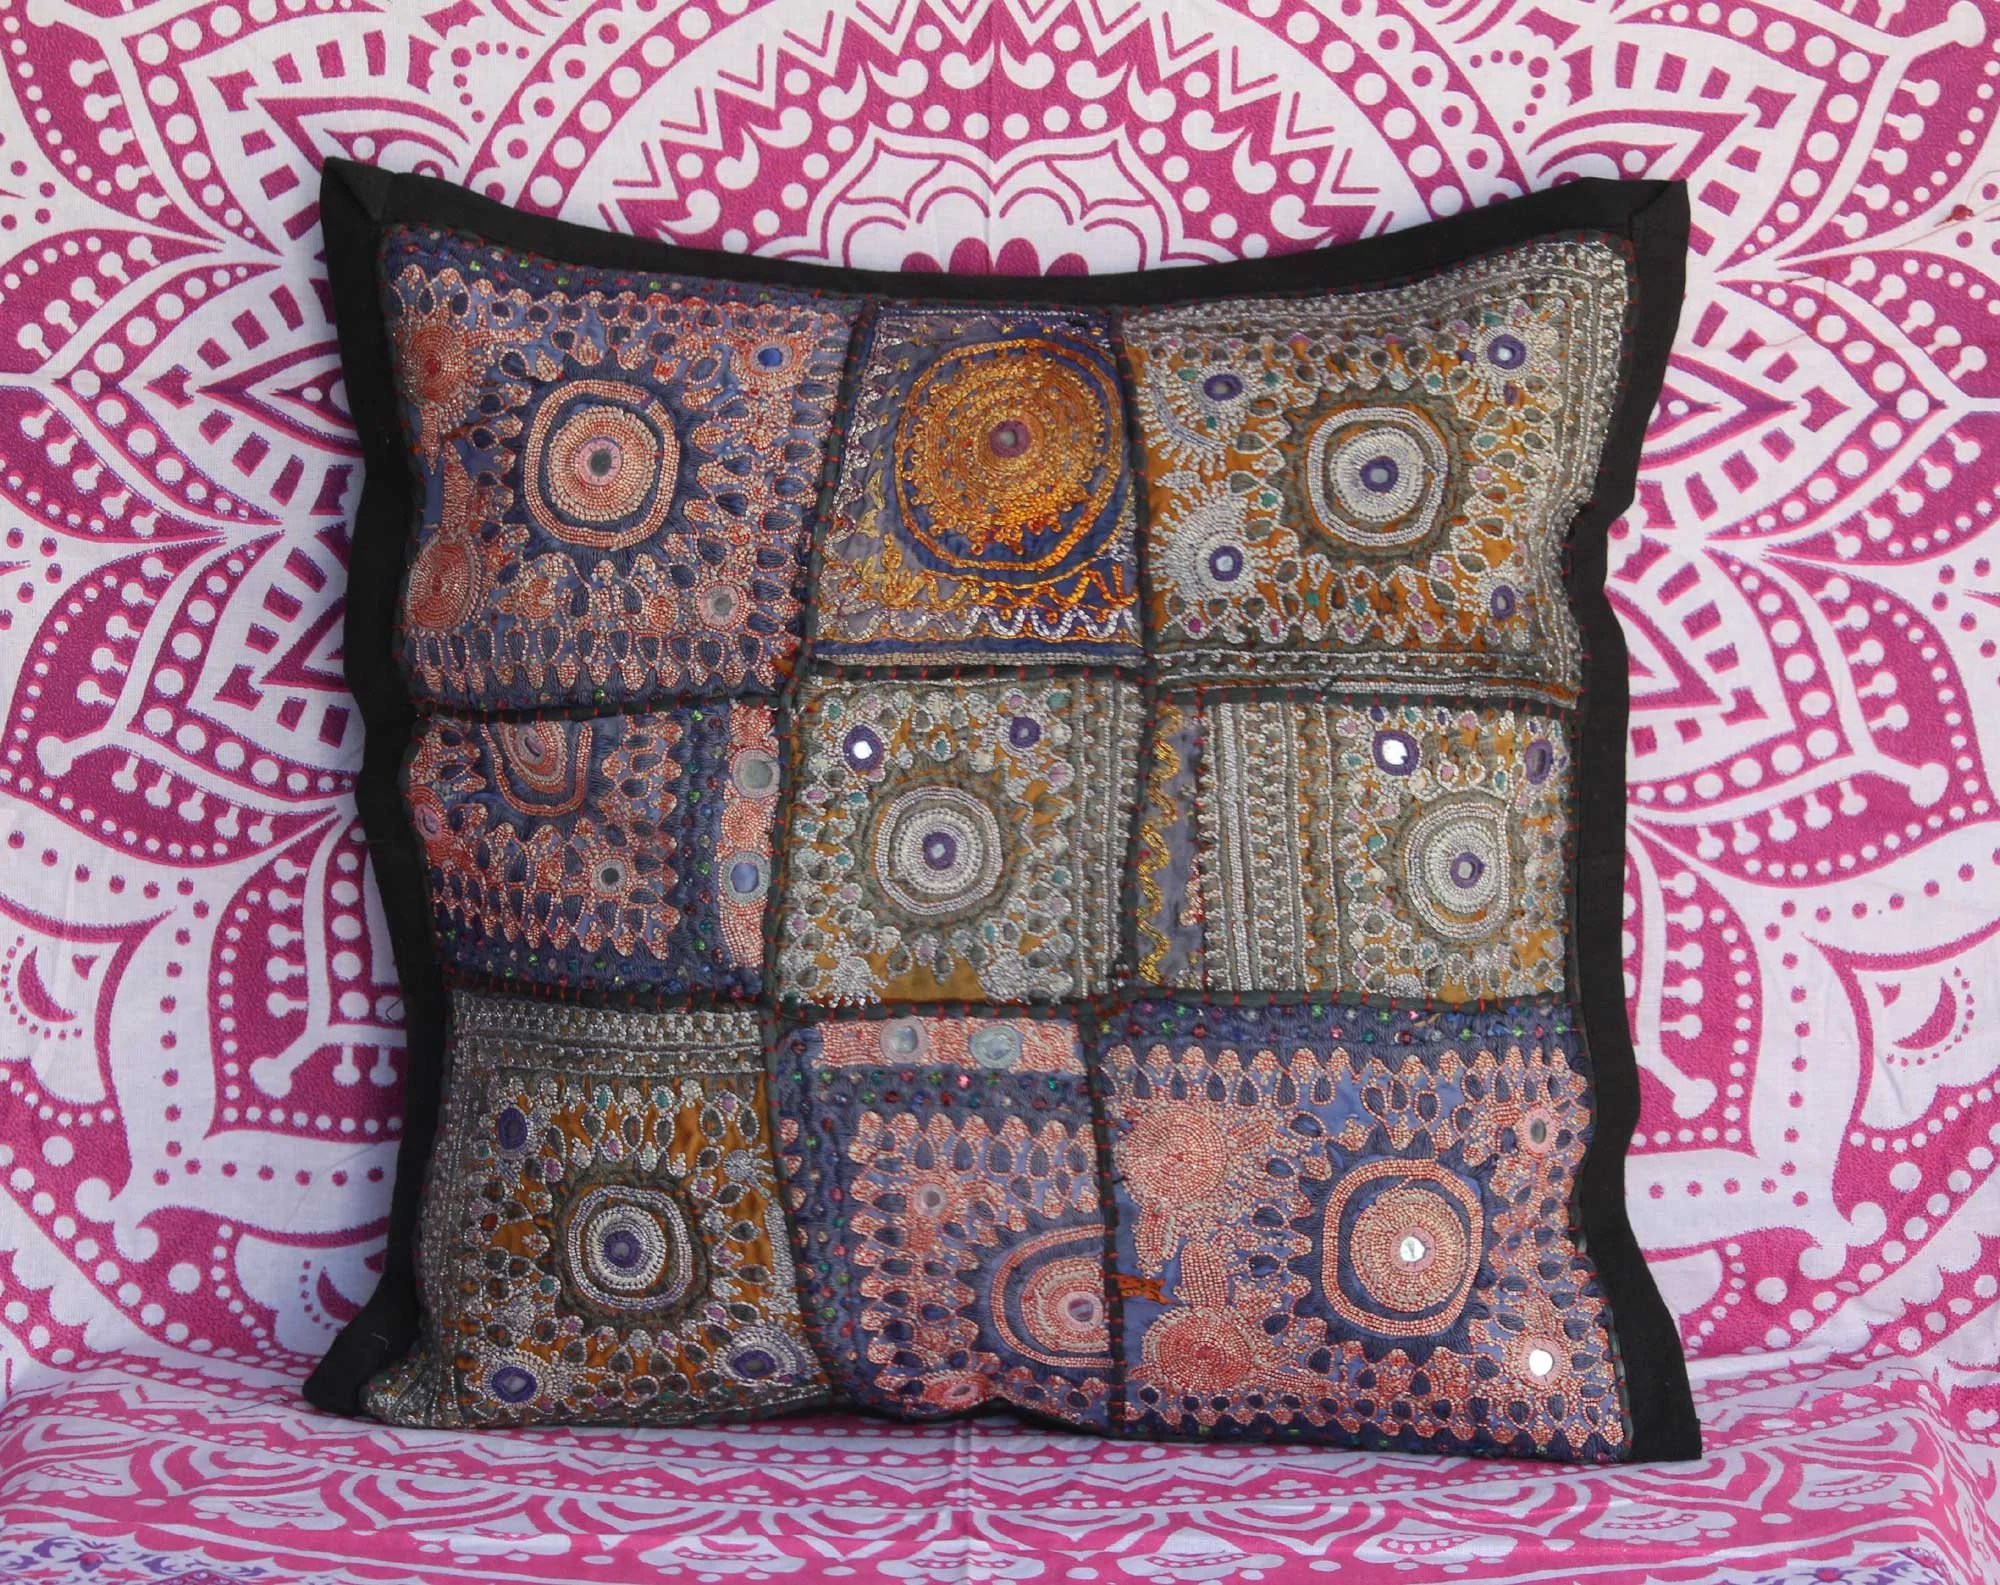 Patchwork Sofa Hand Embroidered Cushion Cover Vintage Sari Patchwork Sofa Decor Pillow Case Handmade Mirror Work Bedding Cushion Case Colorful Pillow Throw